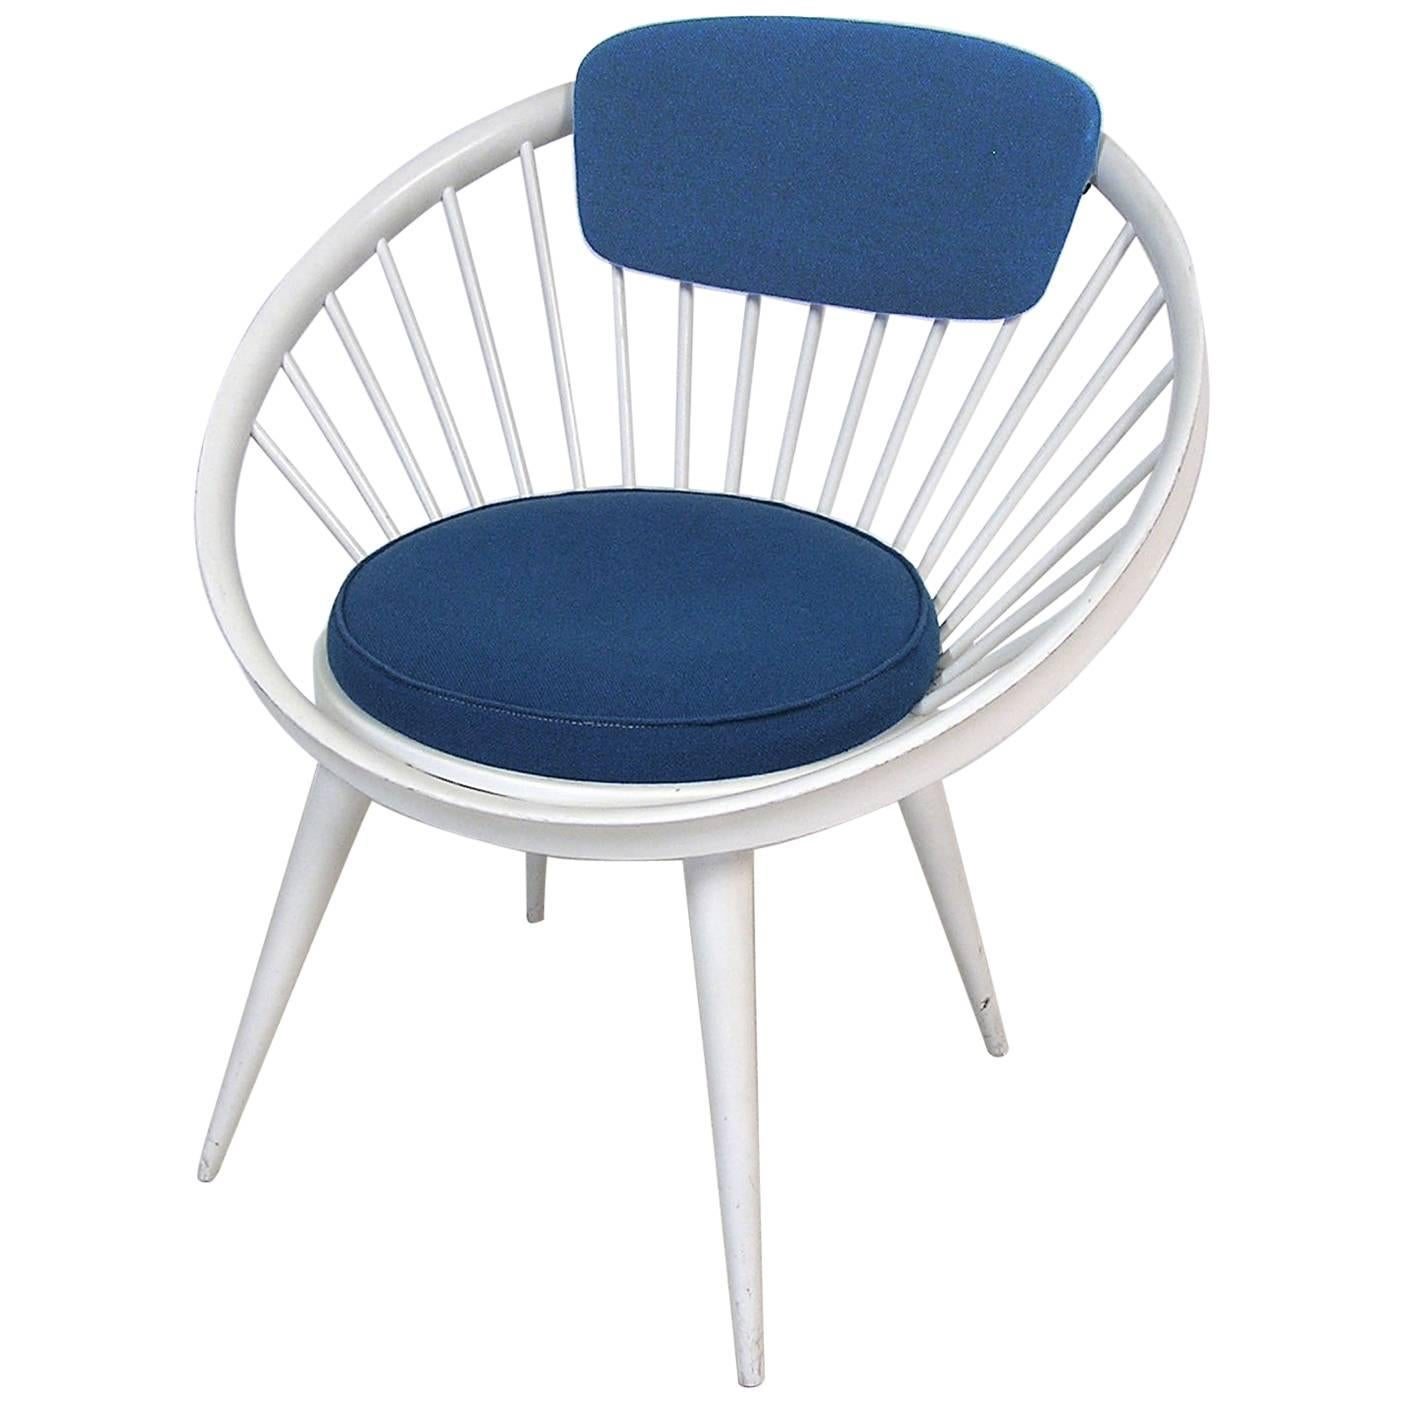 1960s Circle Lounge Chair By Yngve Ekstrom, Italy For Sale